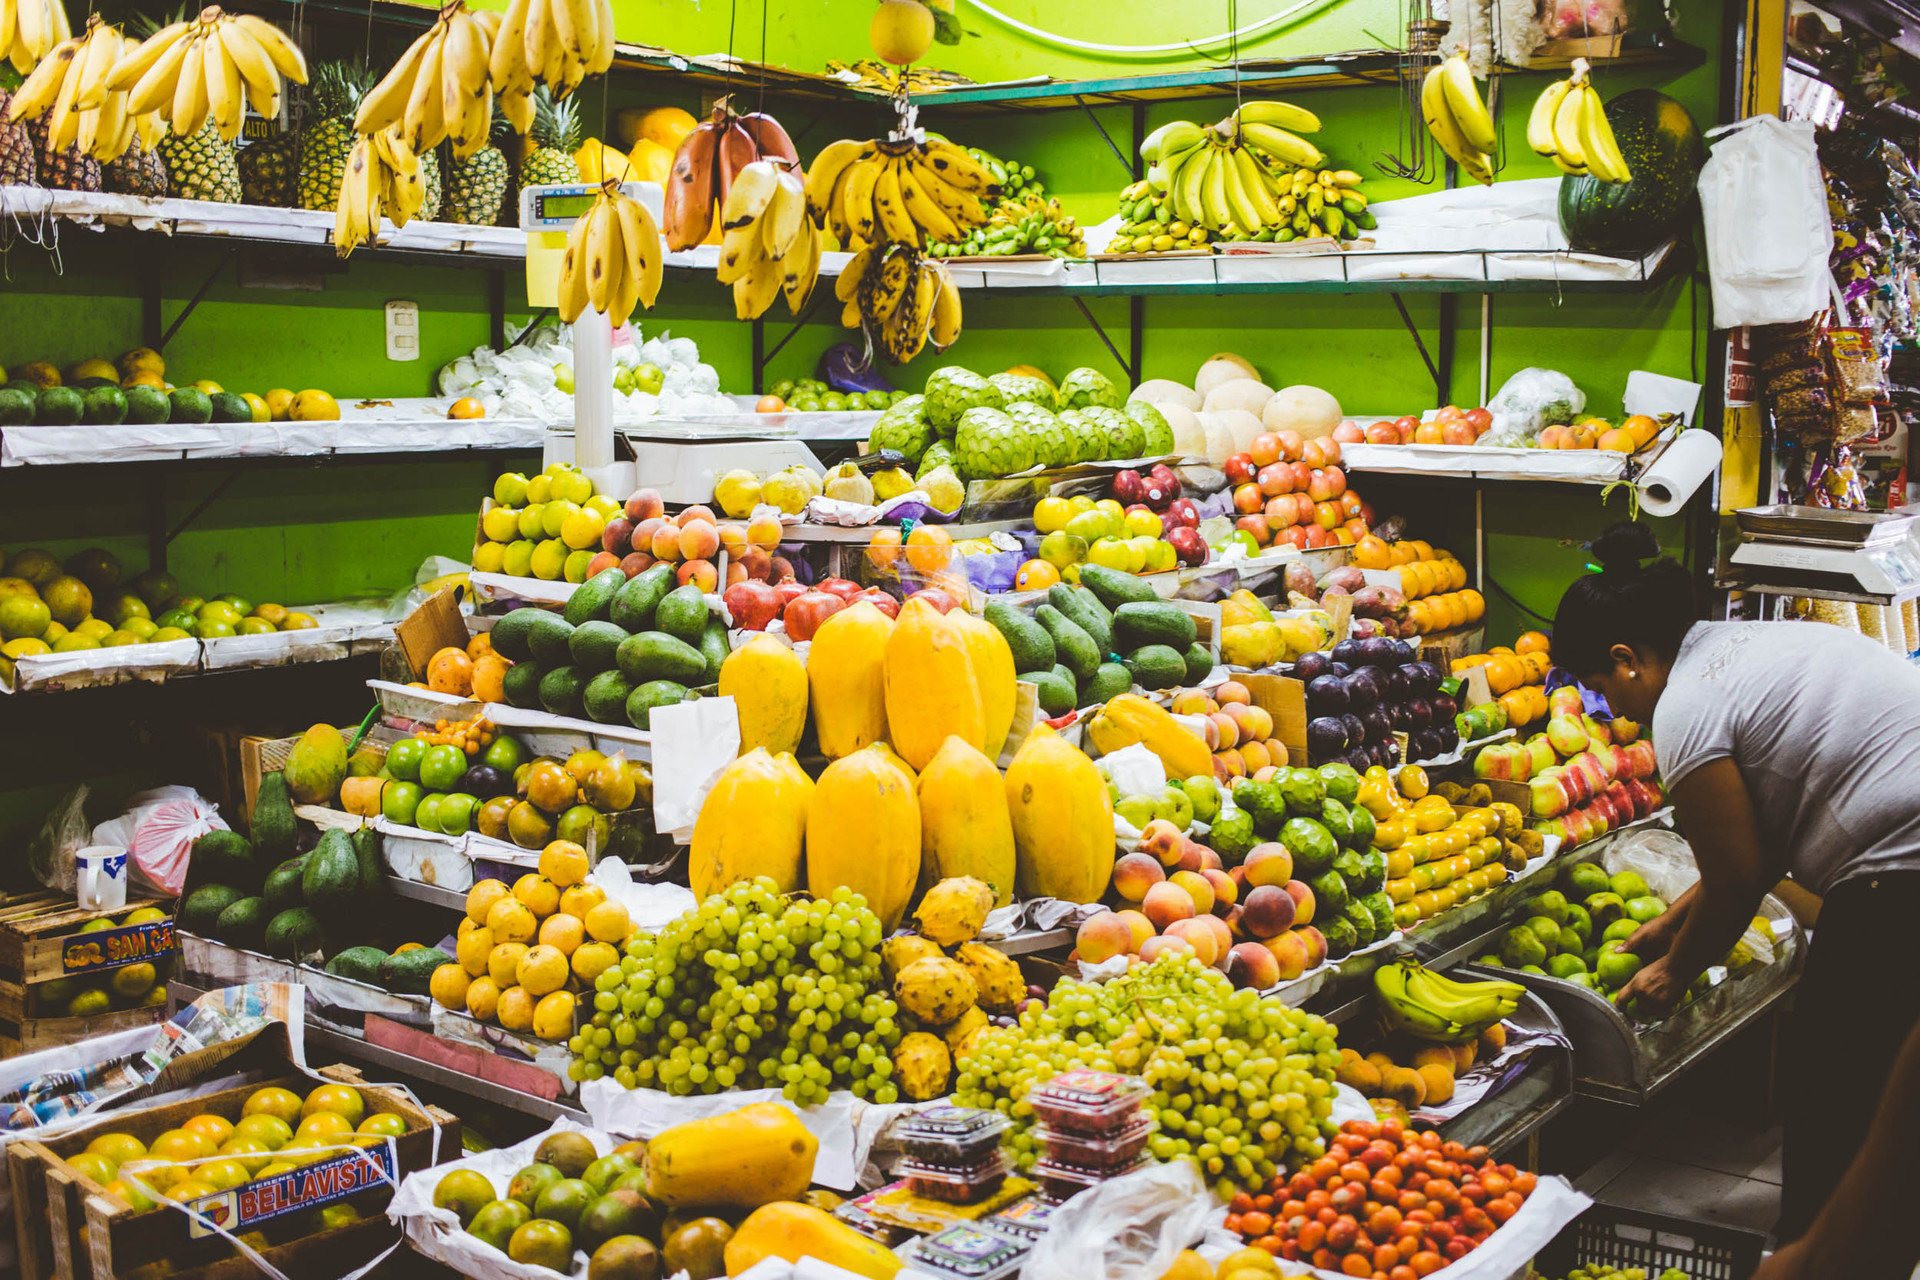 airy fruit local local eats locals market people south america Trip Ideas vegetables marketplace local food City public space geographical feature grocery store greengrocer scene human settlement vendor floristry supermarket whole food flower produce food retail fresh variety